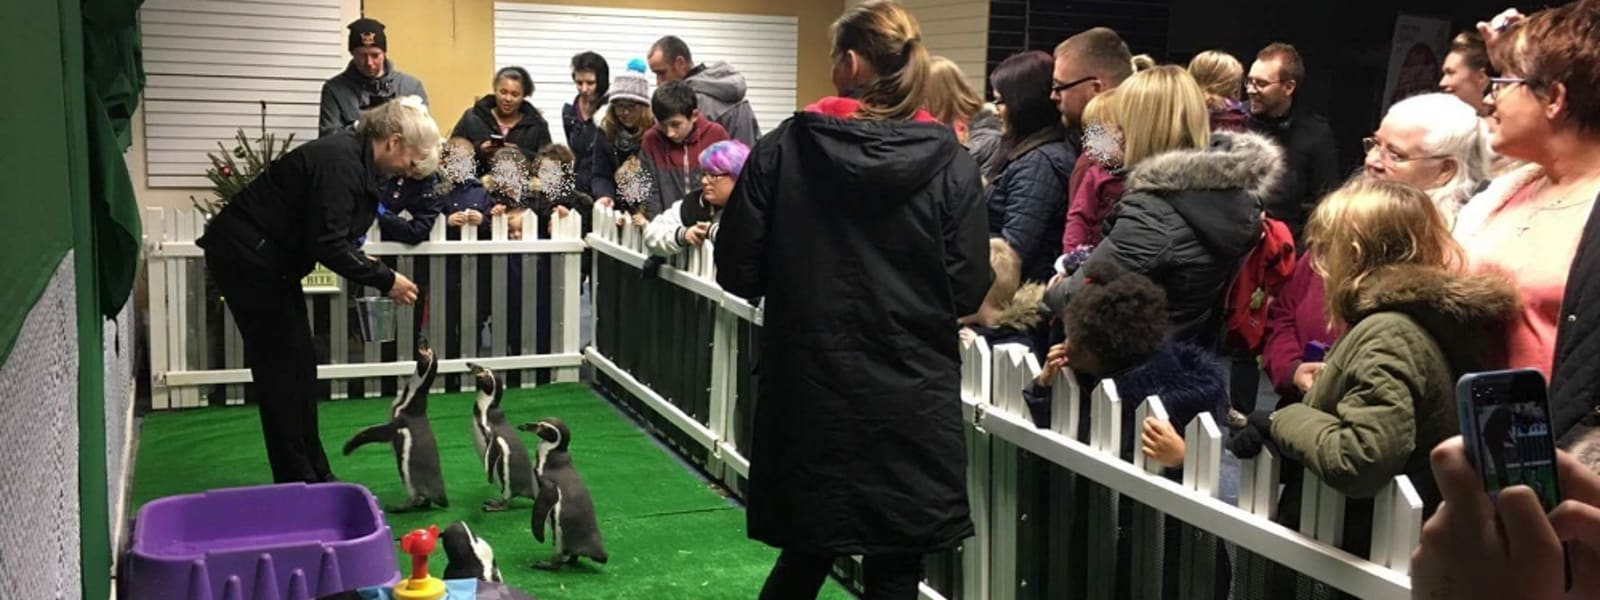 Protesters outraged as wild penguins to feature in festive event